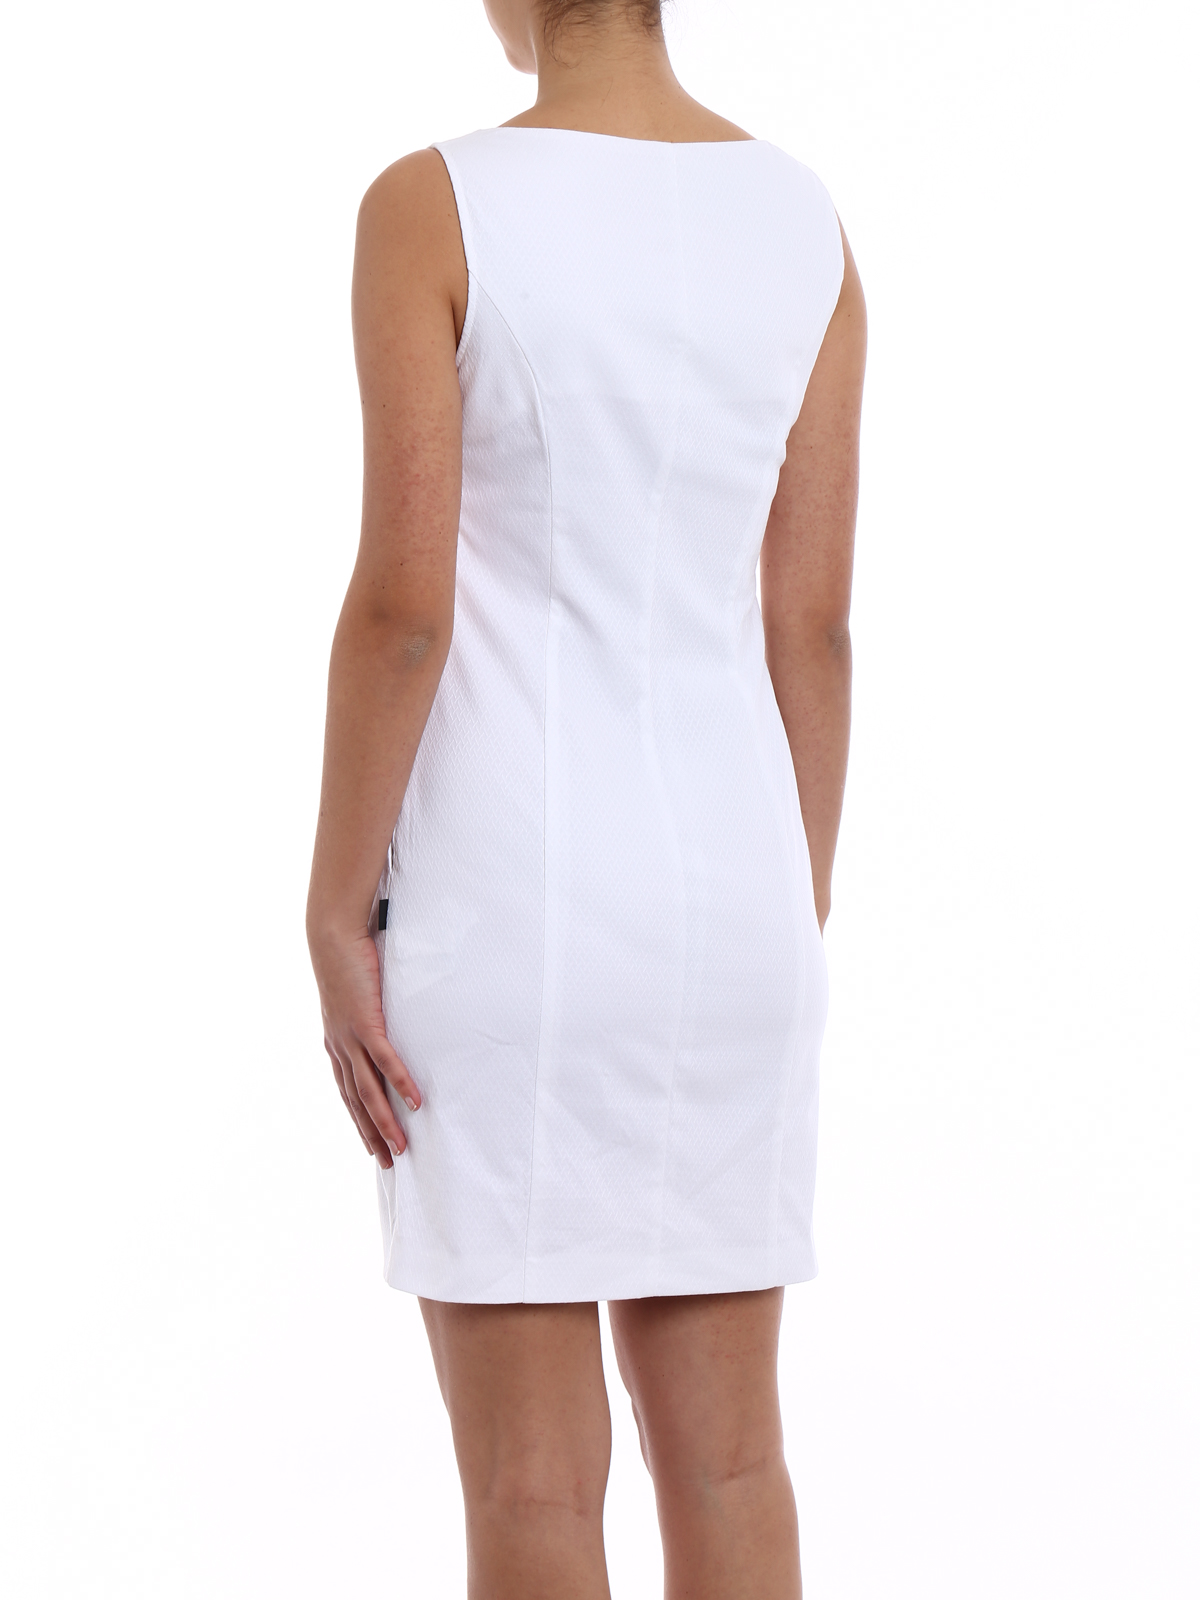 White Cotton Sheath